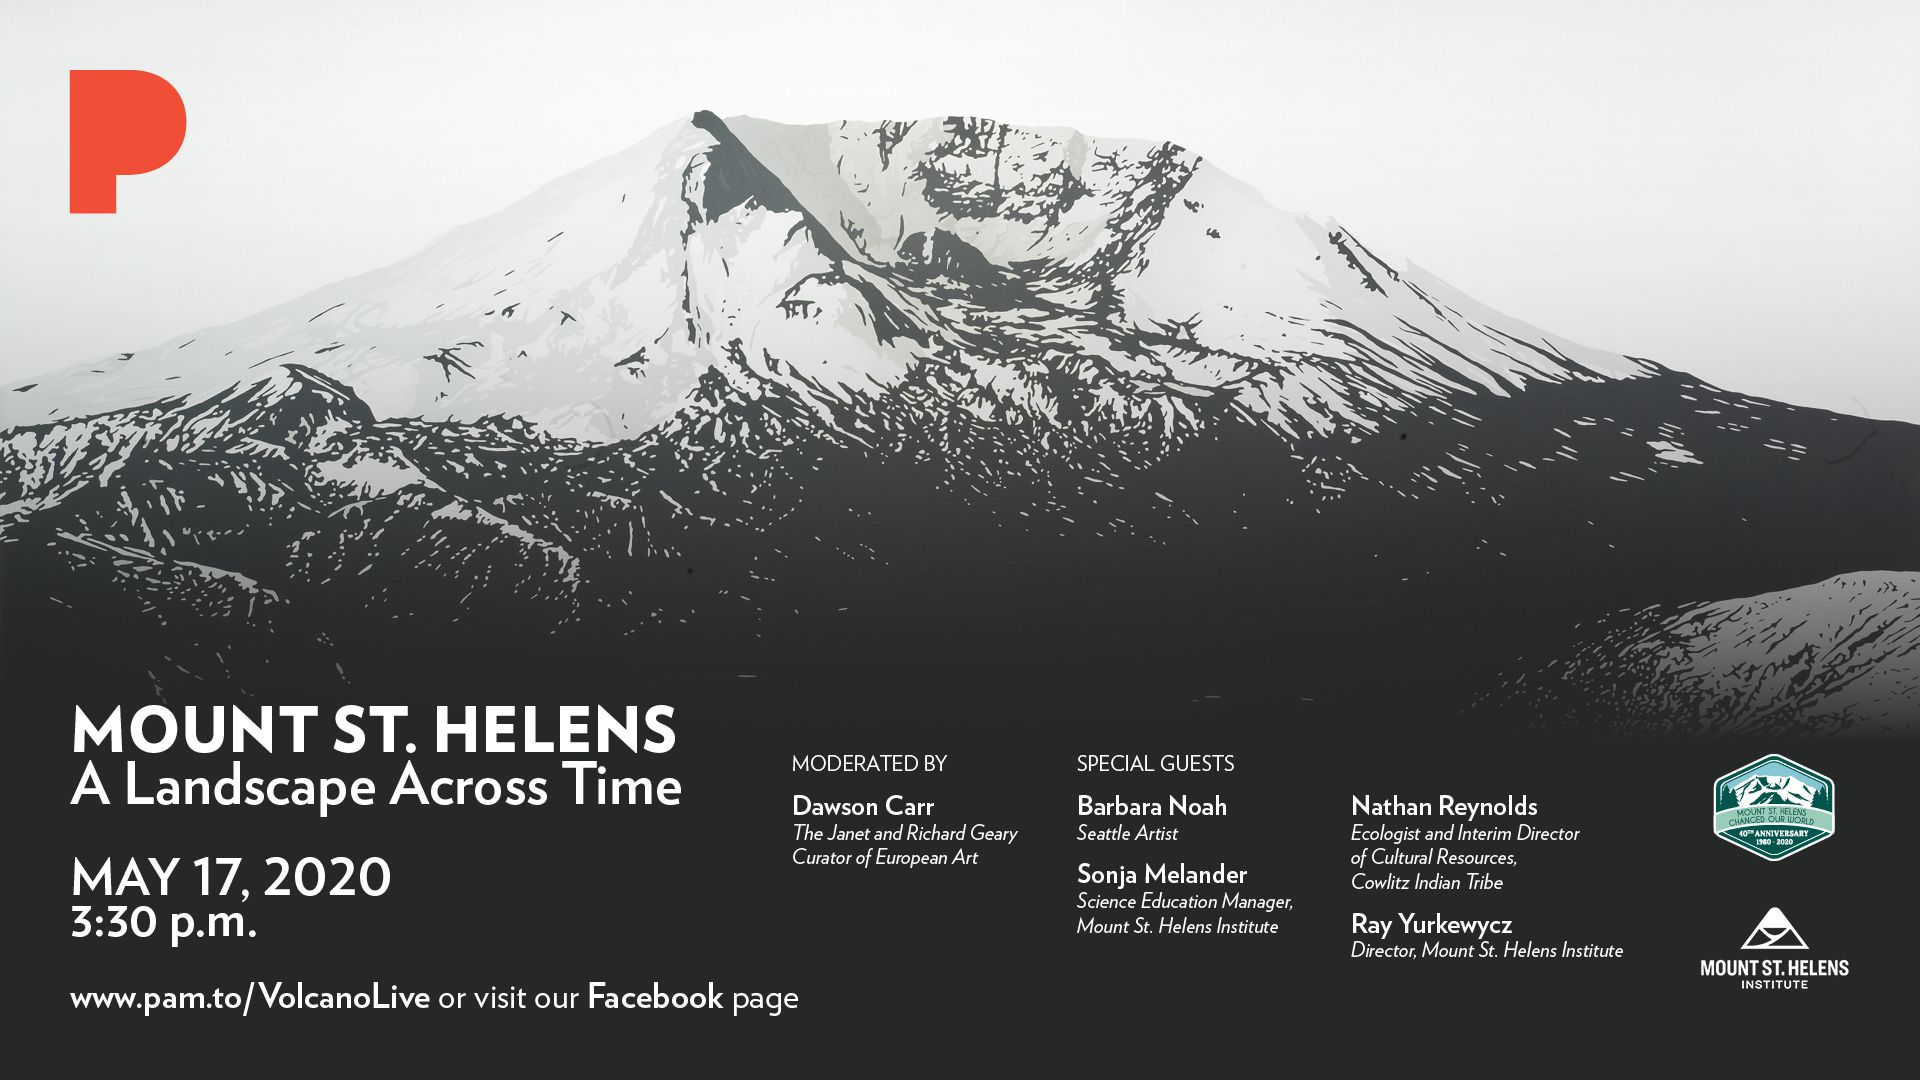 Portland Art Museum and MSHI present: Mount St. Helens: A Landscape Across Time